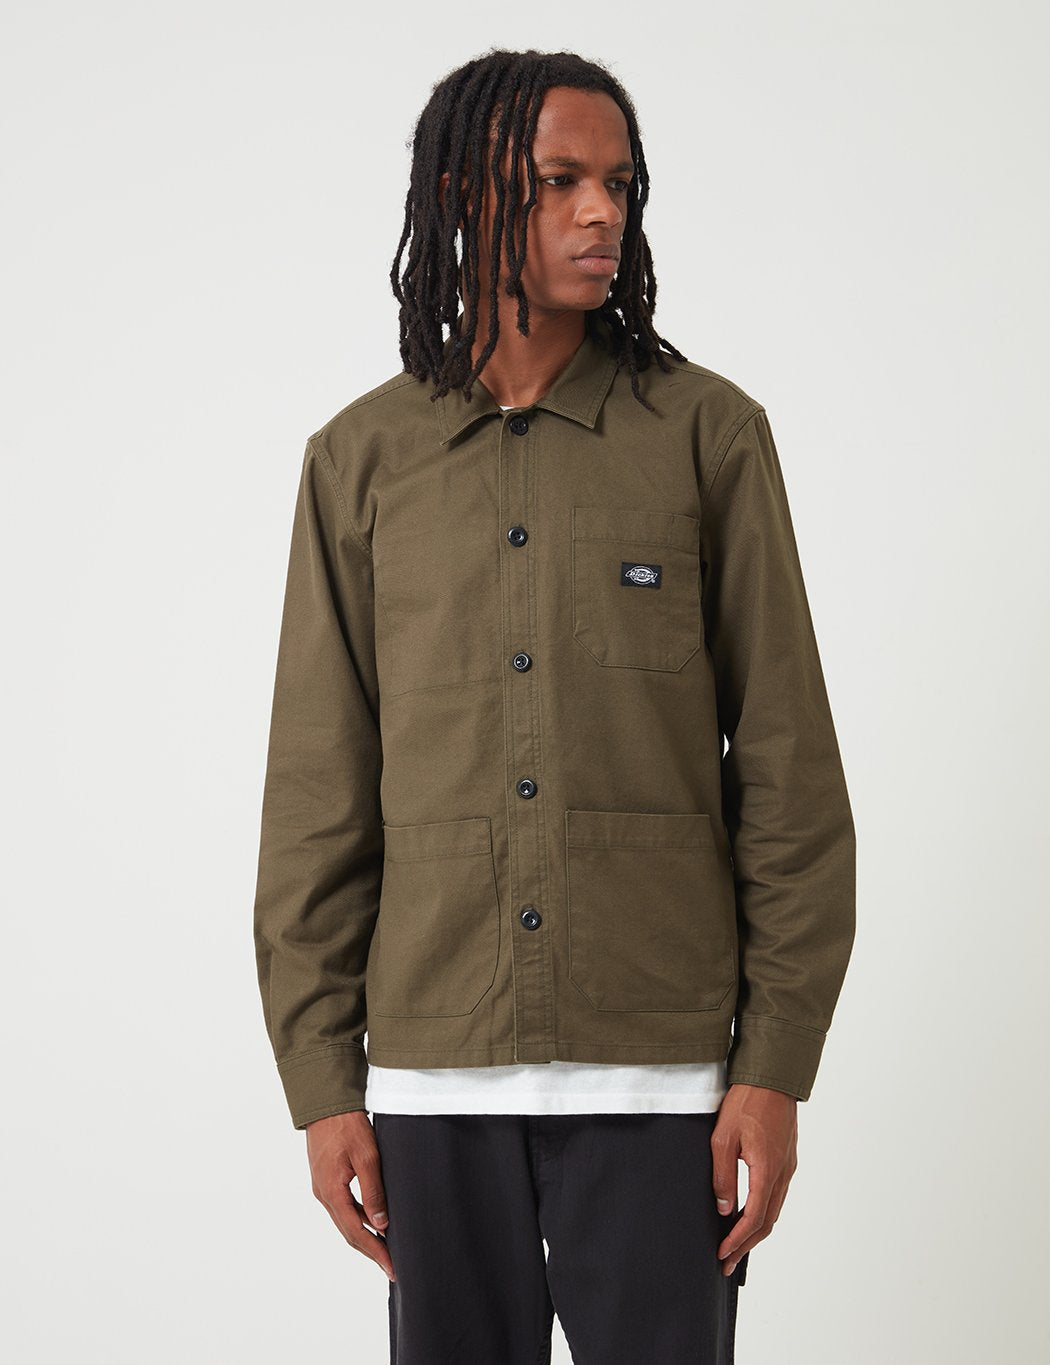 Dickies Caprock Over Shirt - Dark Olive Green